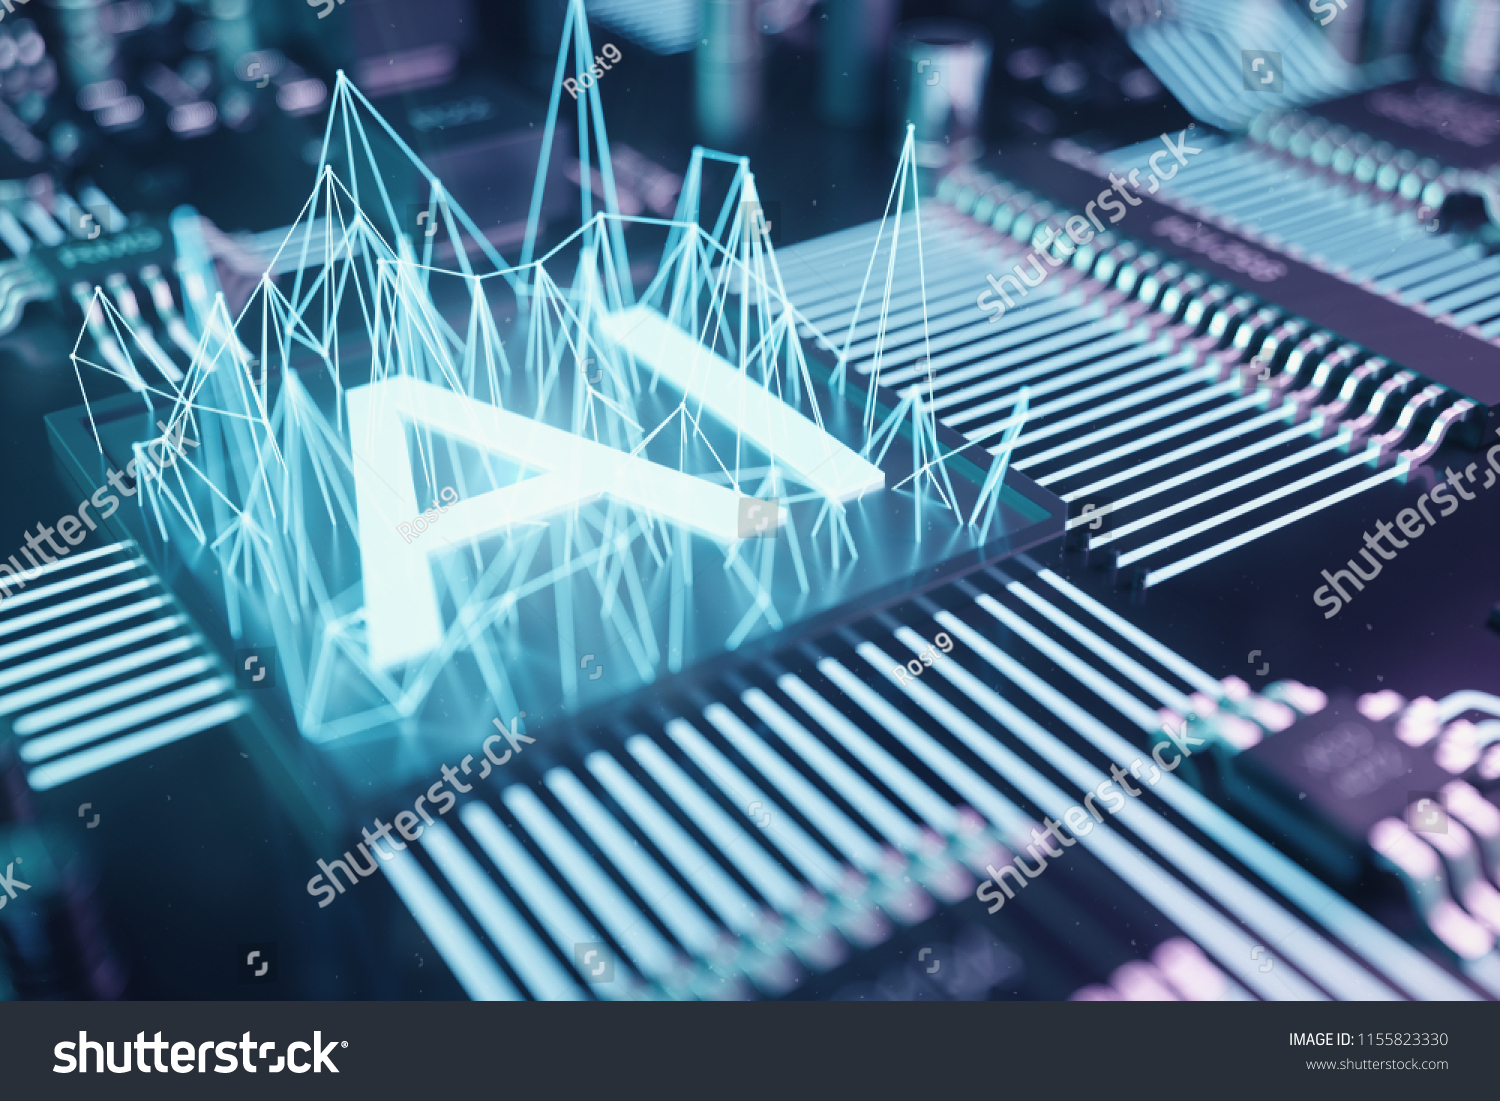 3 D Illustration Abstract Artificial Intelligence On Stock Series Circuit 3d Animated Model Parallel A Printed Board Technology And Engineering Concept